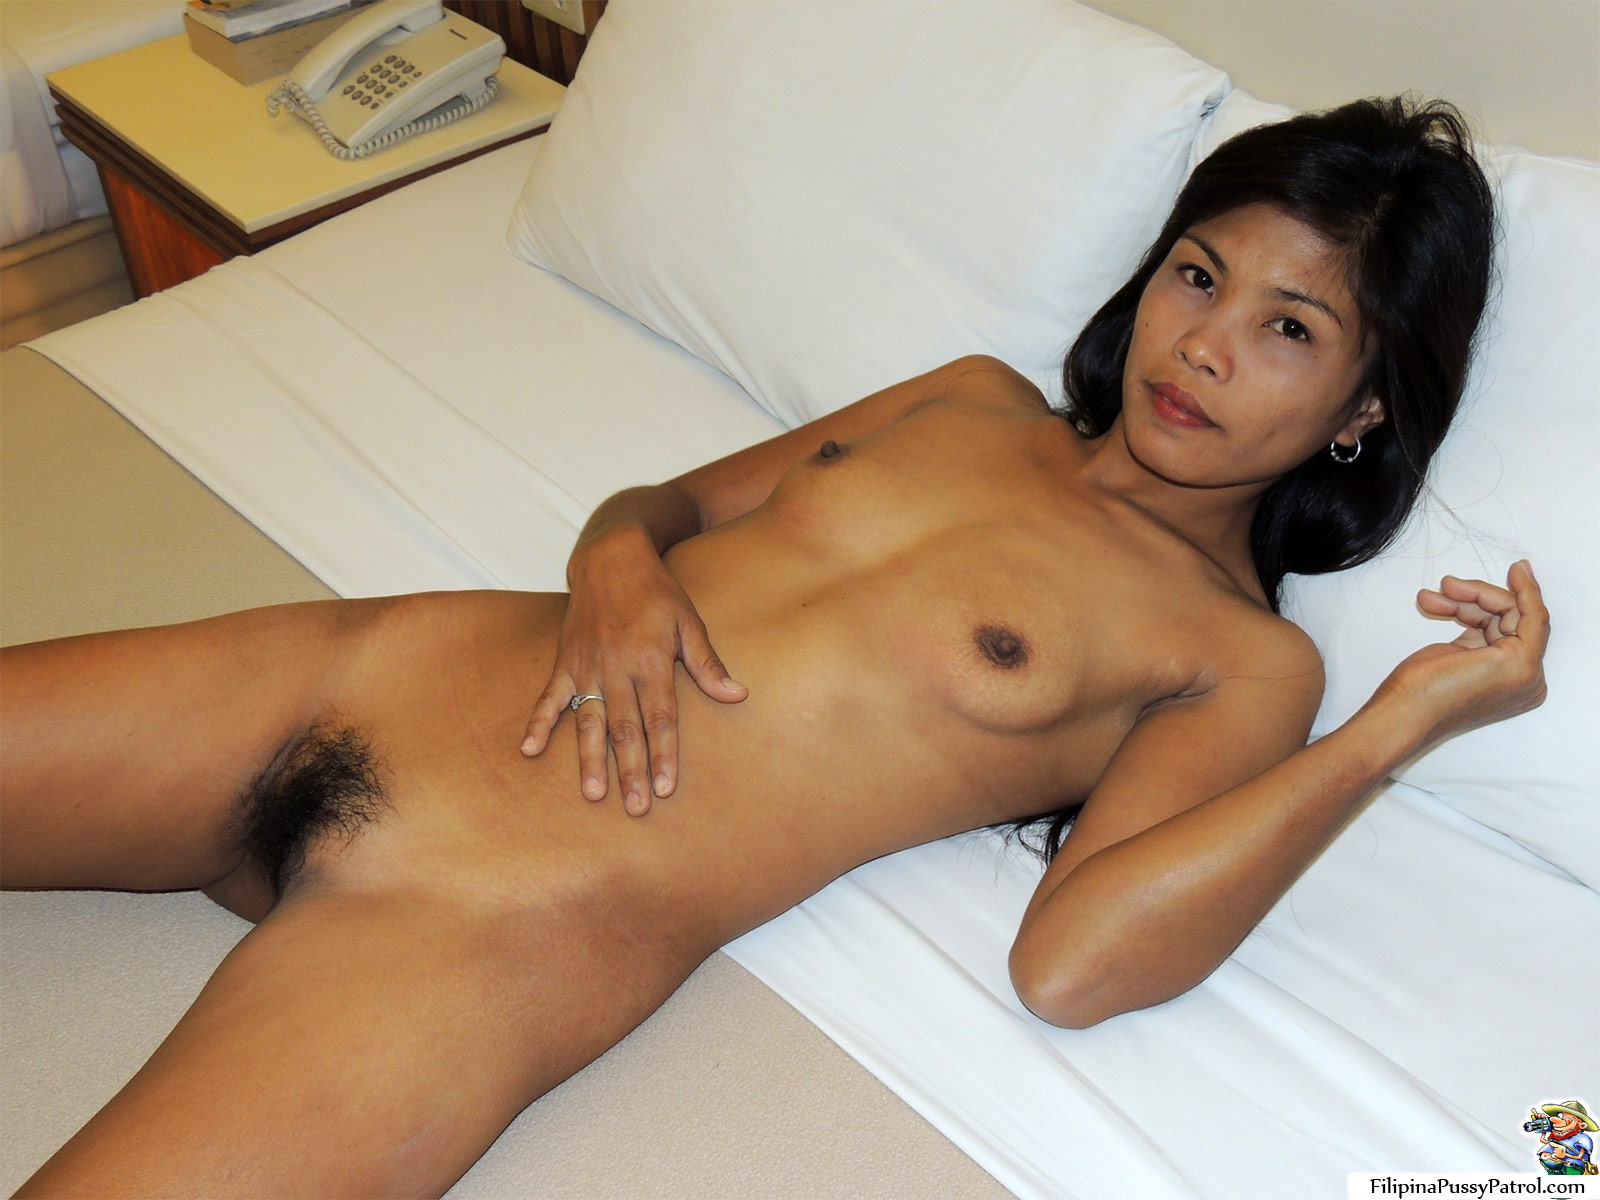 Think, that filipina girl nude pussy charming question